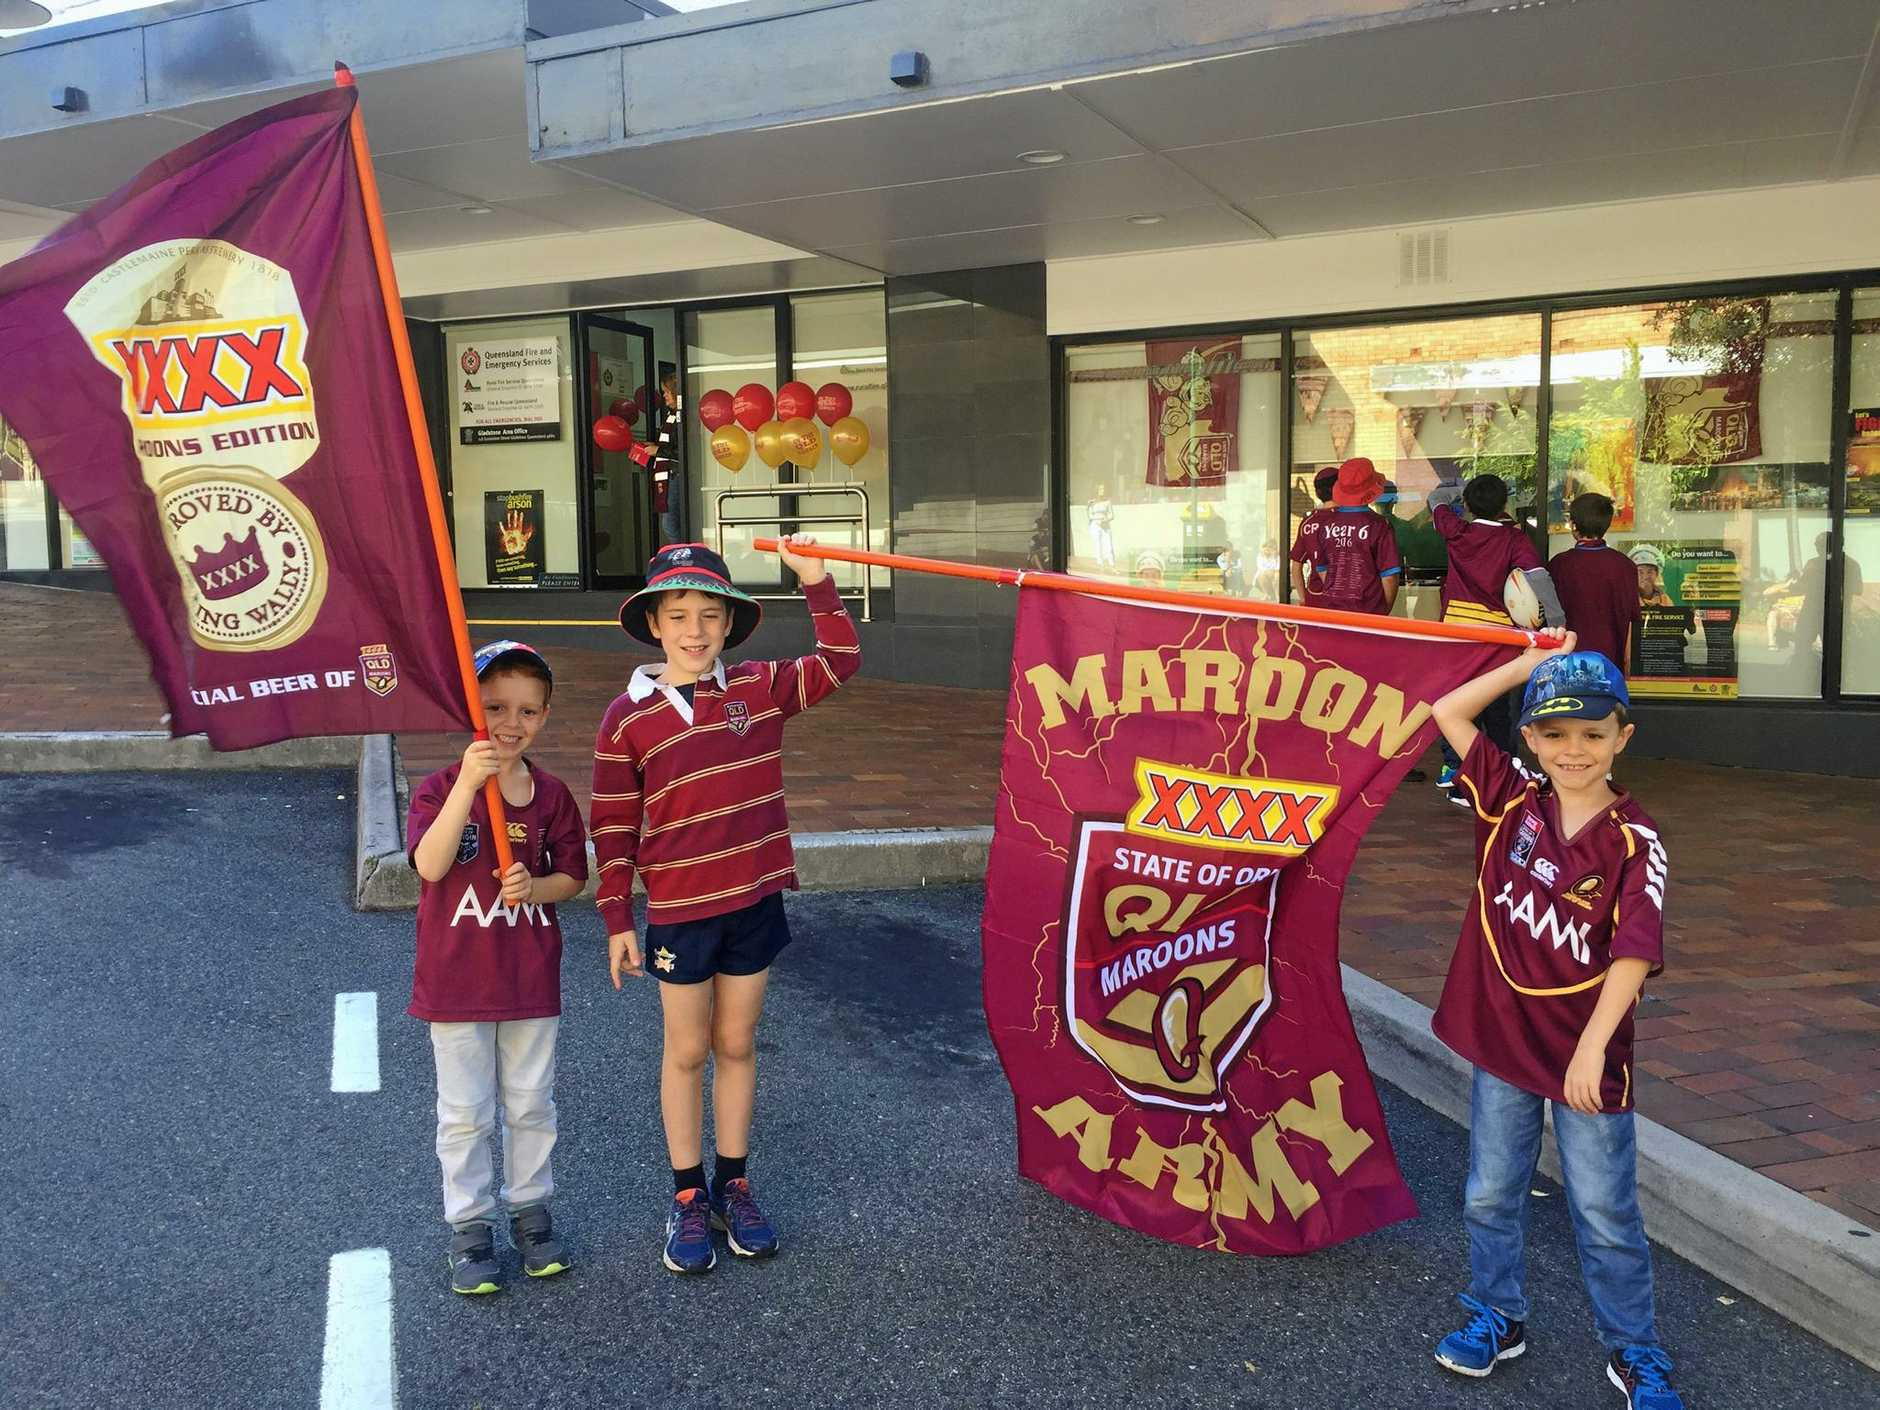 QUEENSLAND DAY: Nothing epitomises being a Queenslander more than wearing maroon.